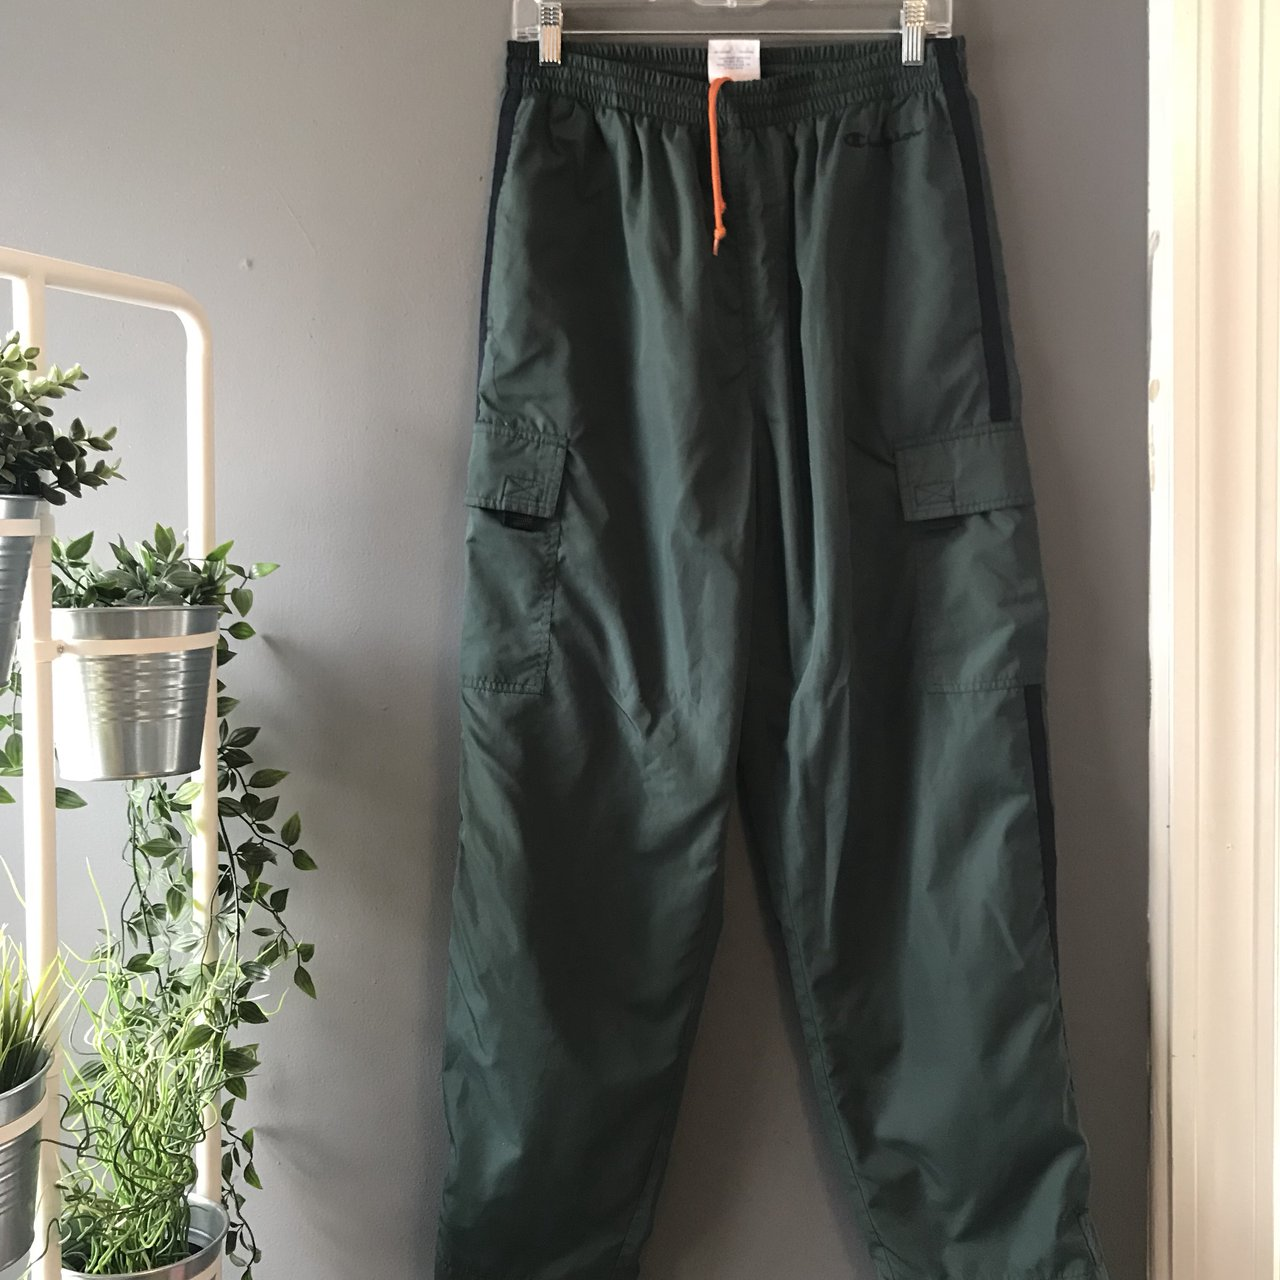 5e2c228faf42a Vintage army green track pants. Has three pockets two on the - Depop